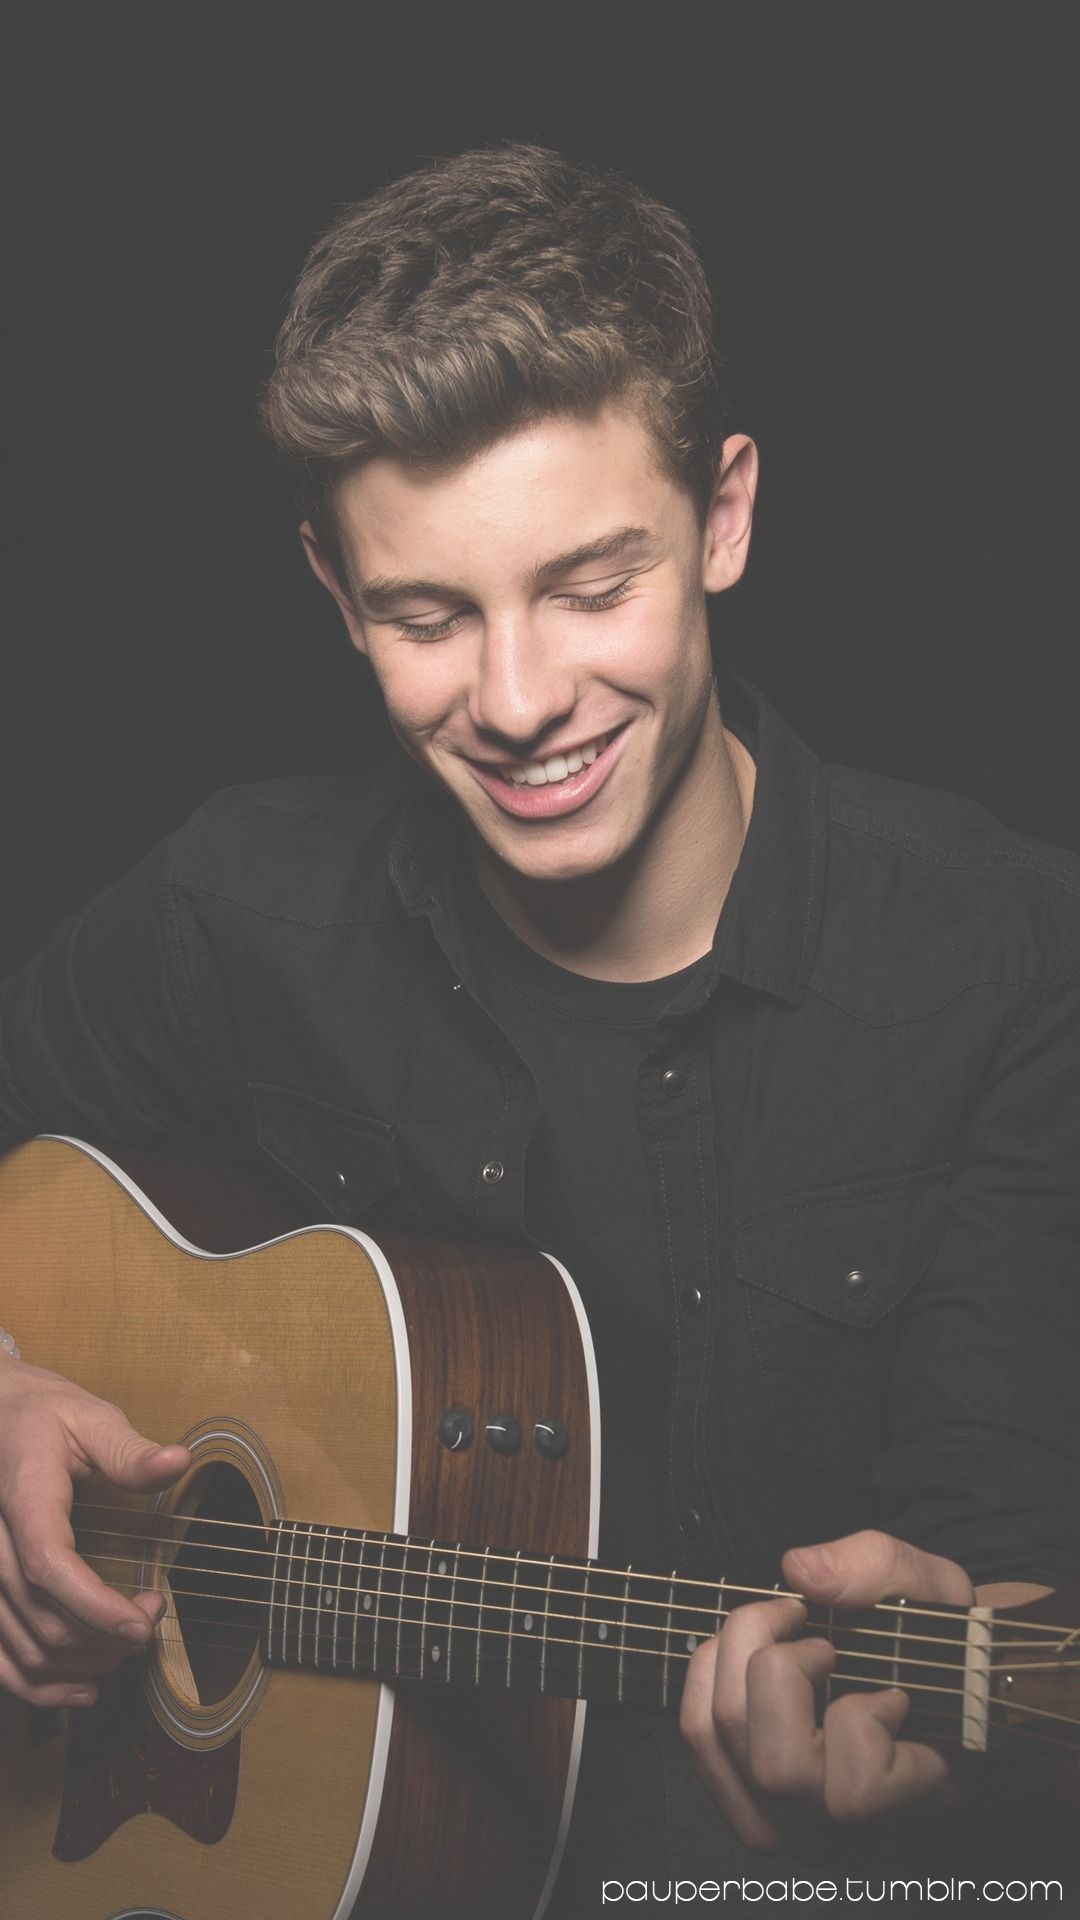 dopexma ey Shawn Mendes